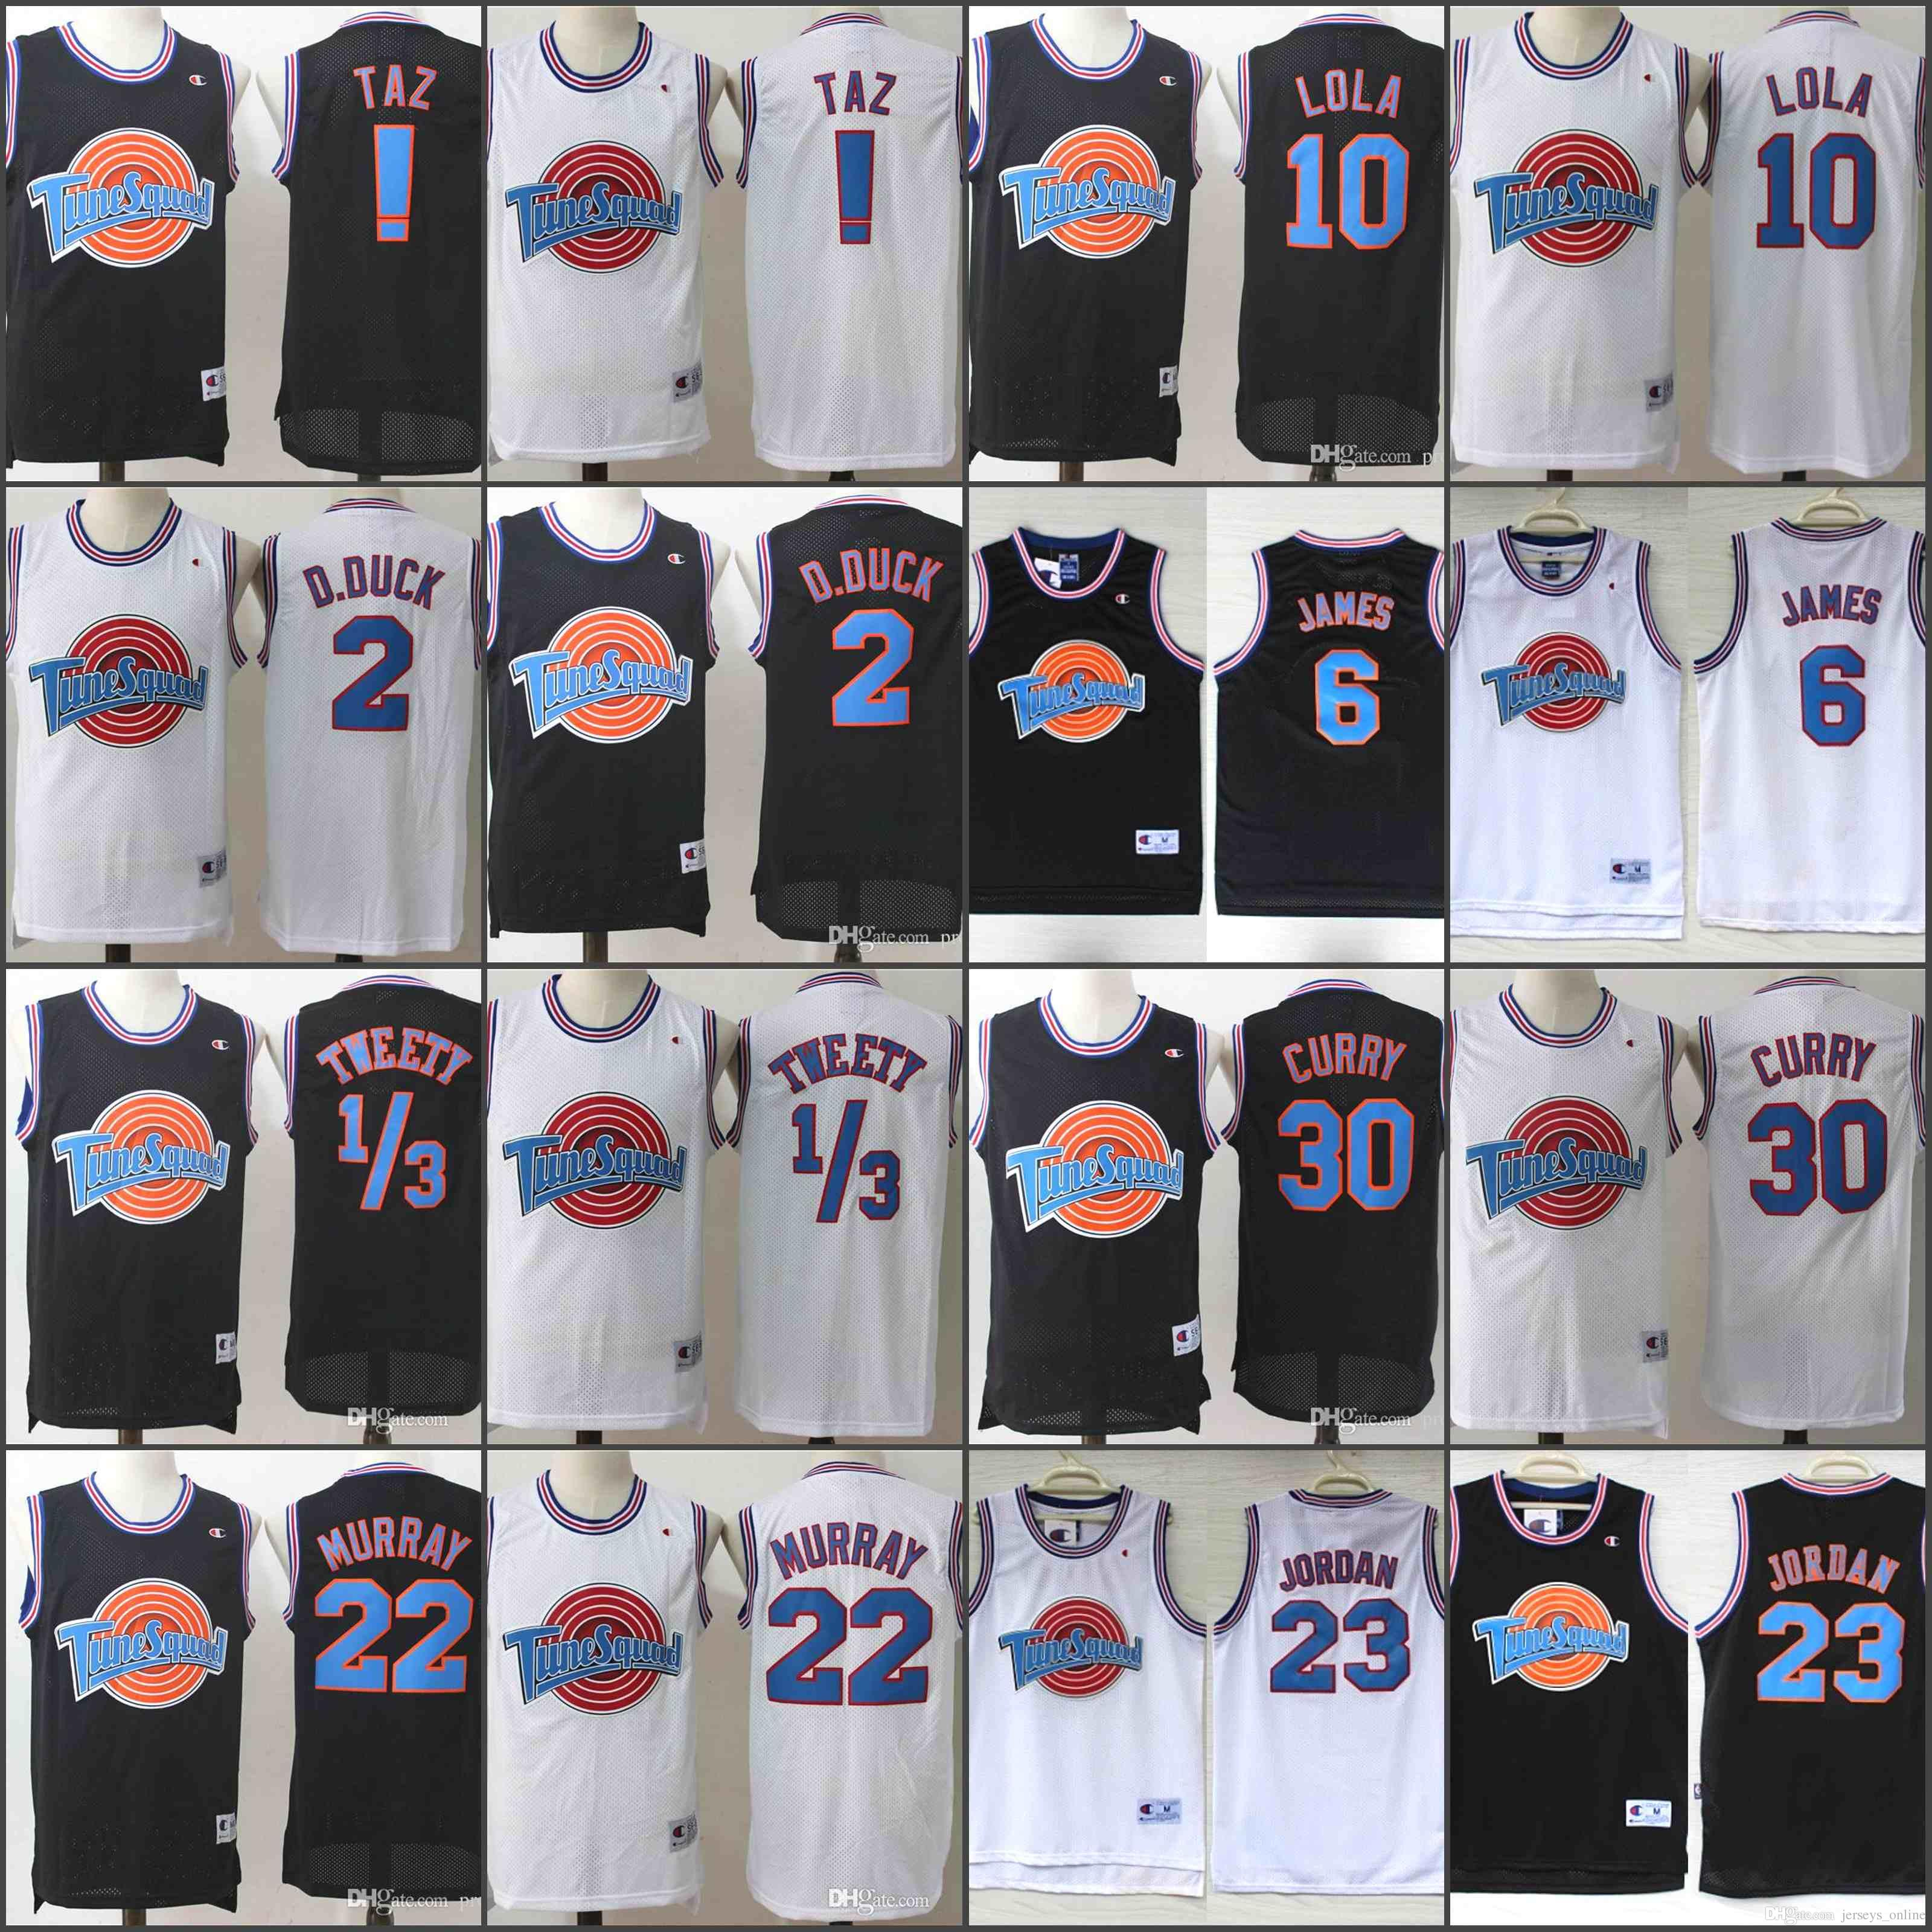 Acquista Versione Da Uomo Tune Squad Stitched Jersey 1 TAZ 1 Bugs 1 3  Tweety 2 D.DUCK 10 Lola 22 Murray 23 Basketball Jerseys A  20.31 Dal  Jerseys online ... 7f872268bbae